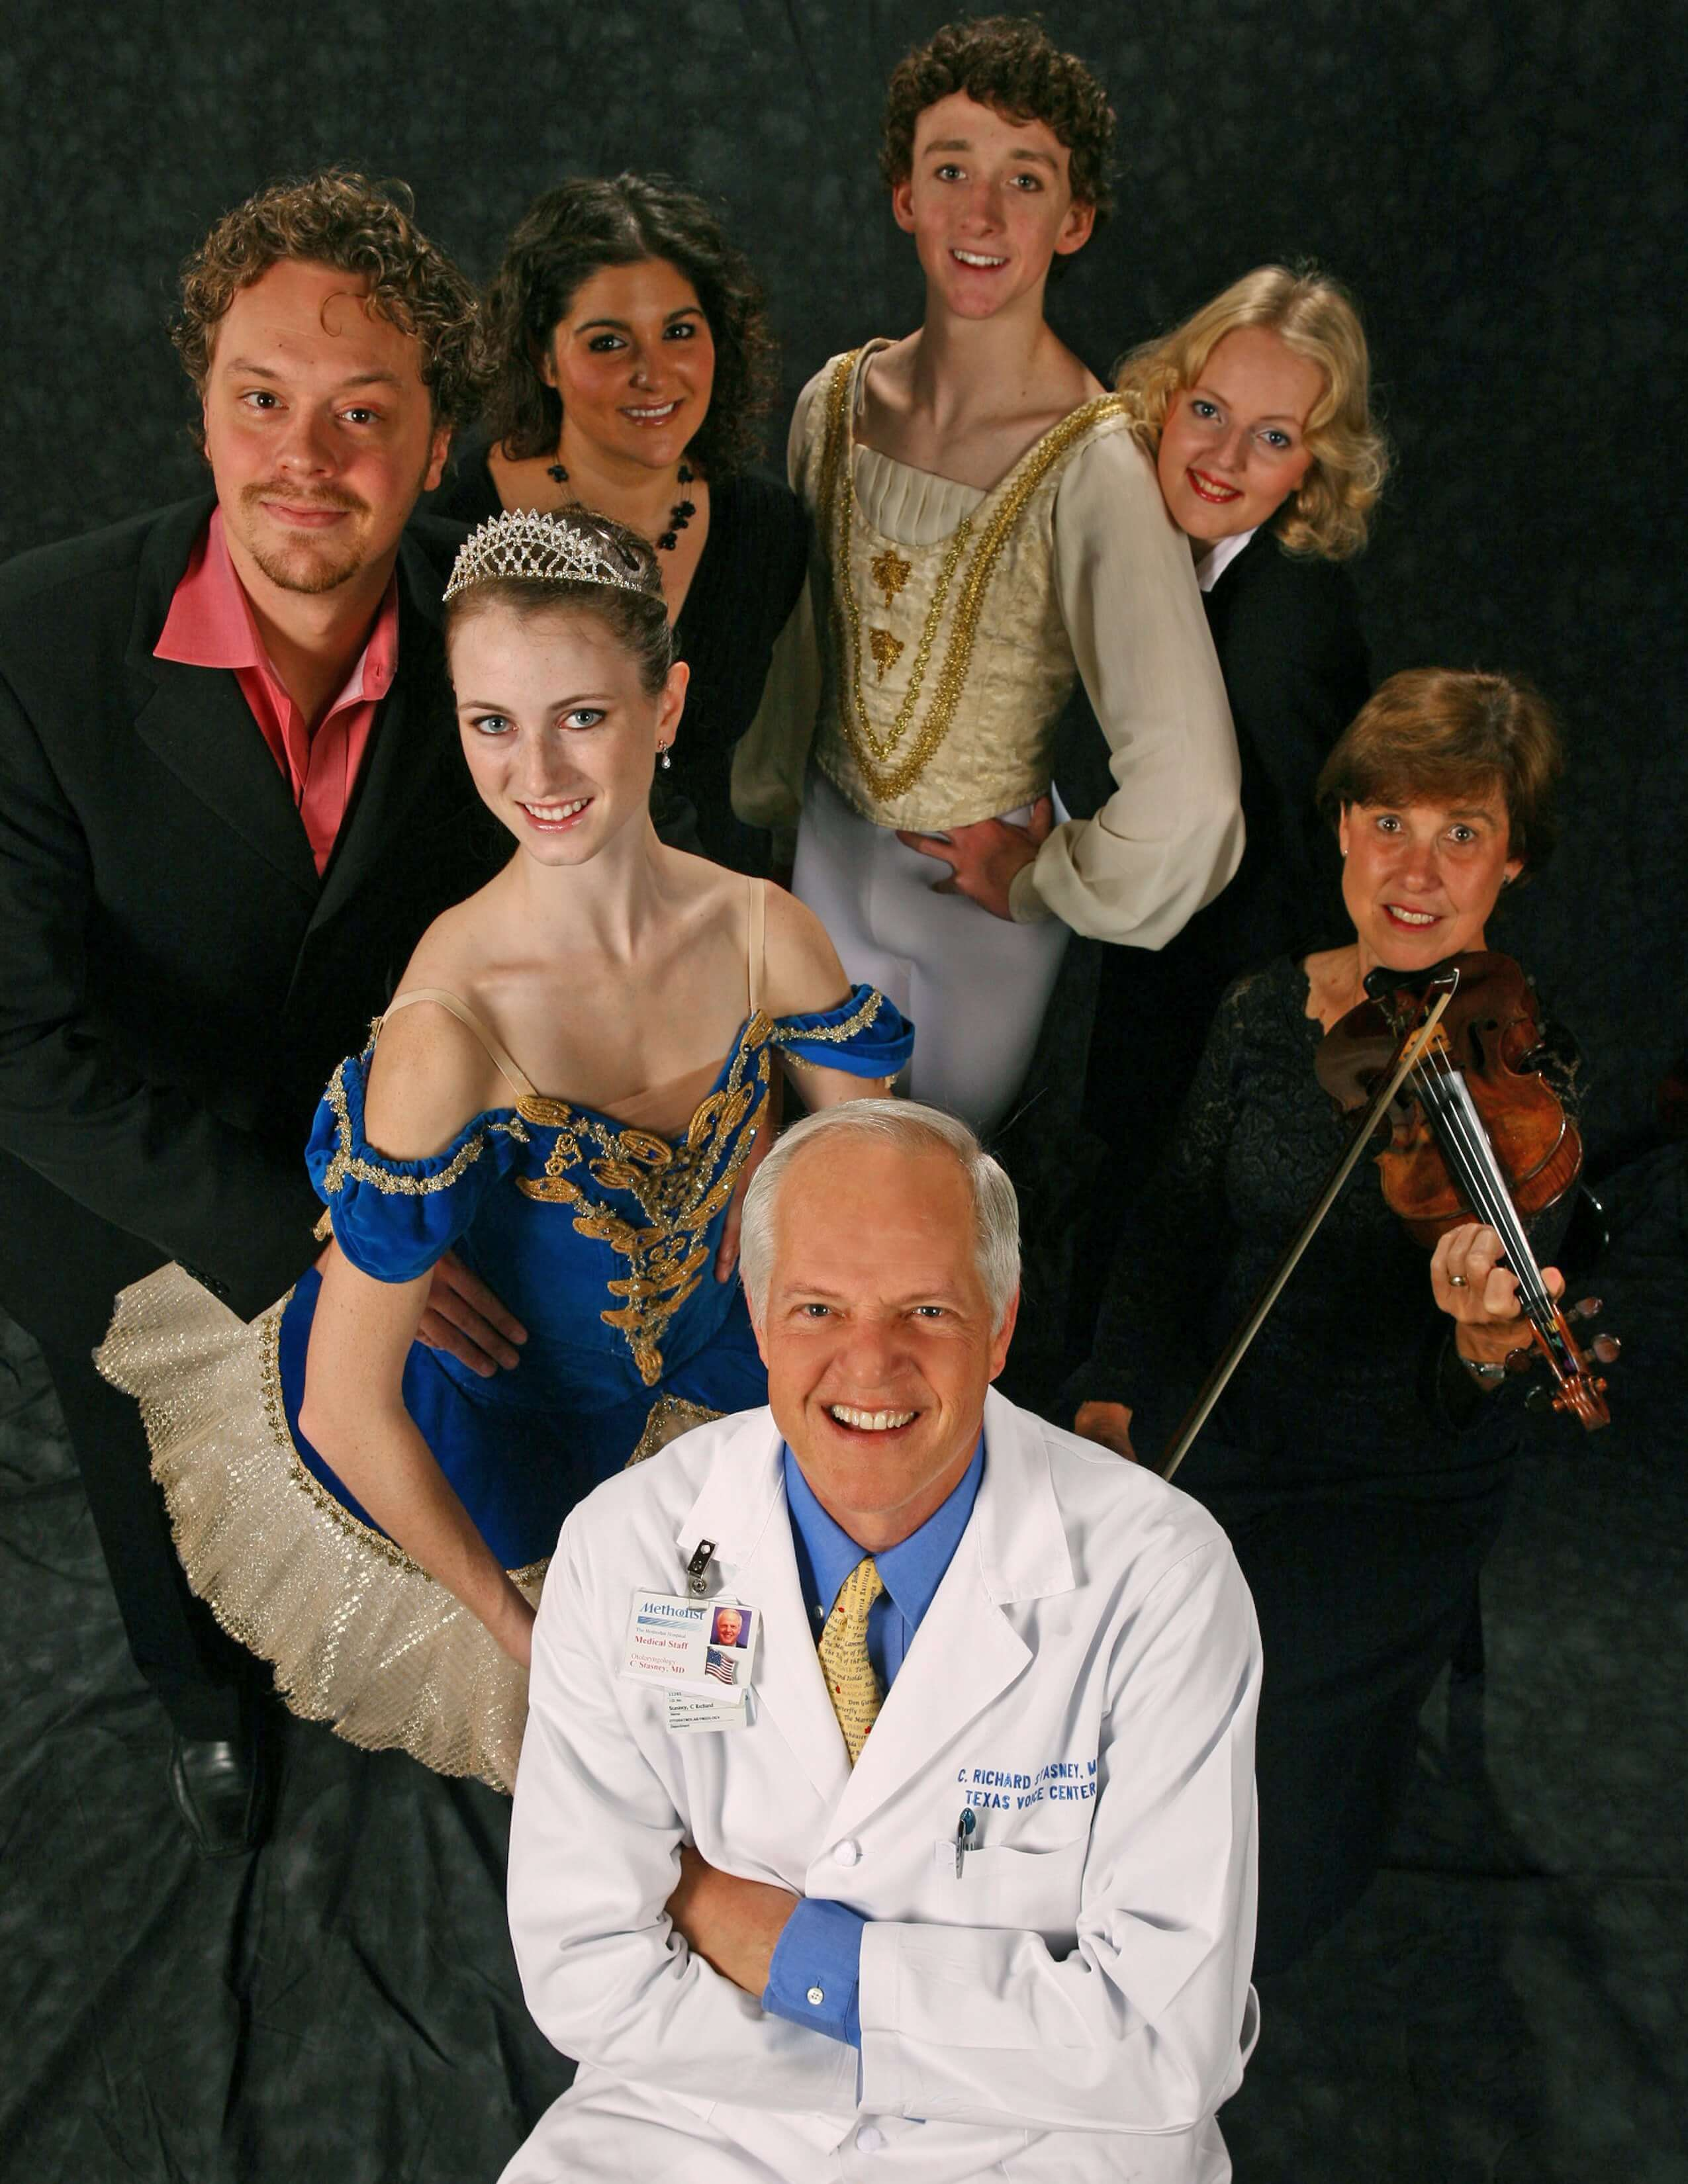 Dr. C. Richard Stasney, also known as Houston's Opera Doctor, founded the Center for Performing Arts Medicine in 1996. (Photo Courtesy of Houston Methodist)